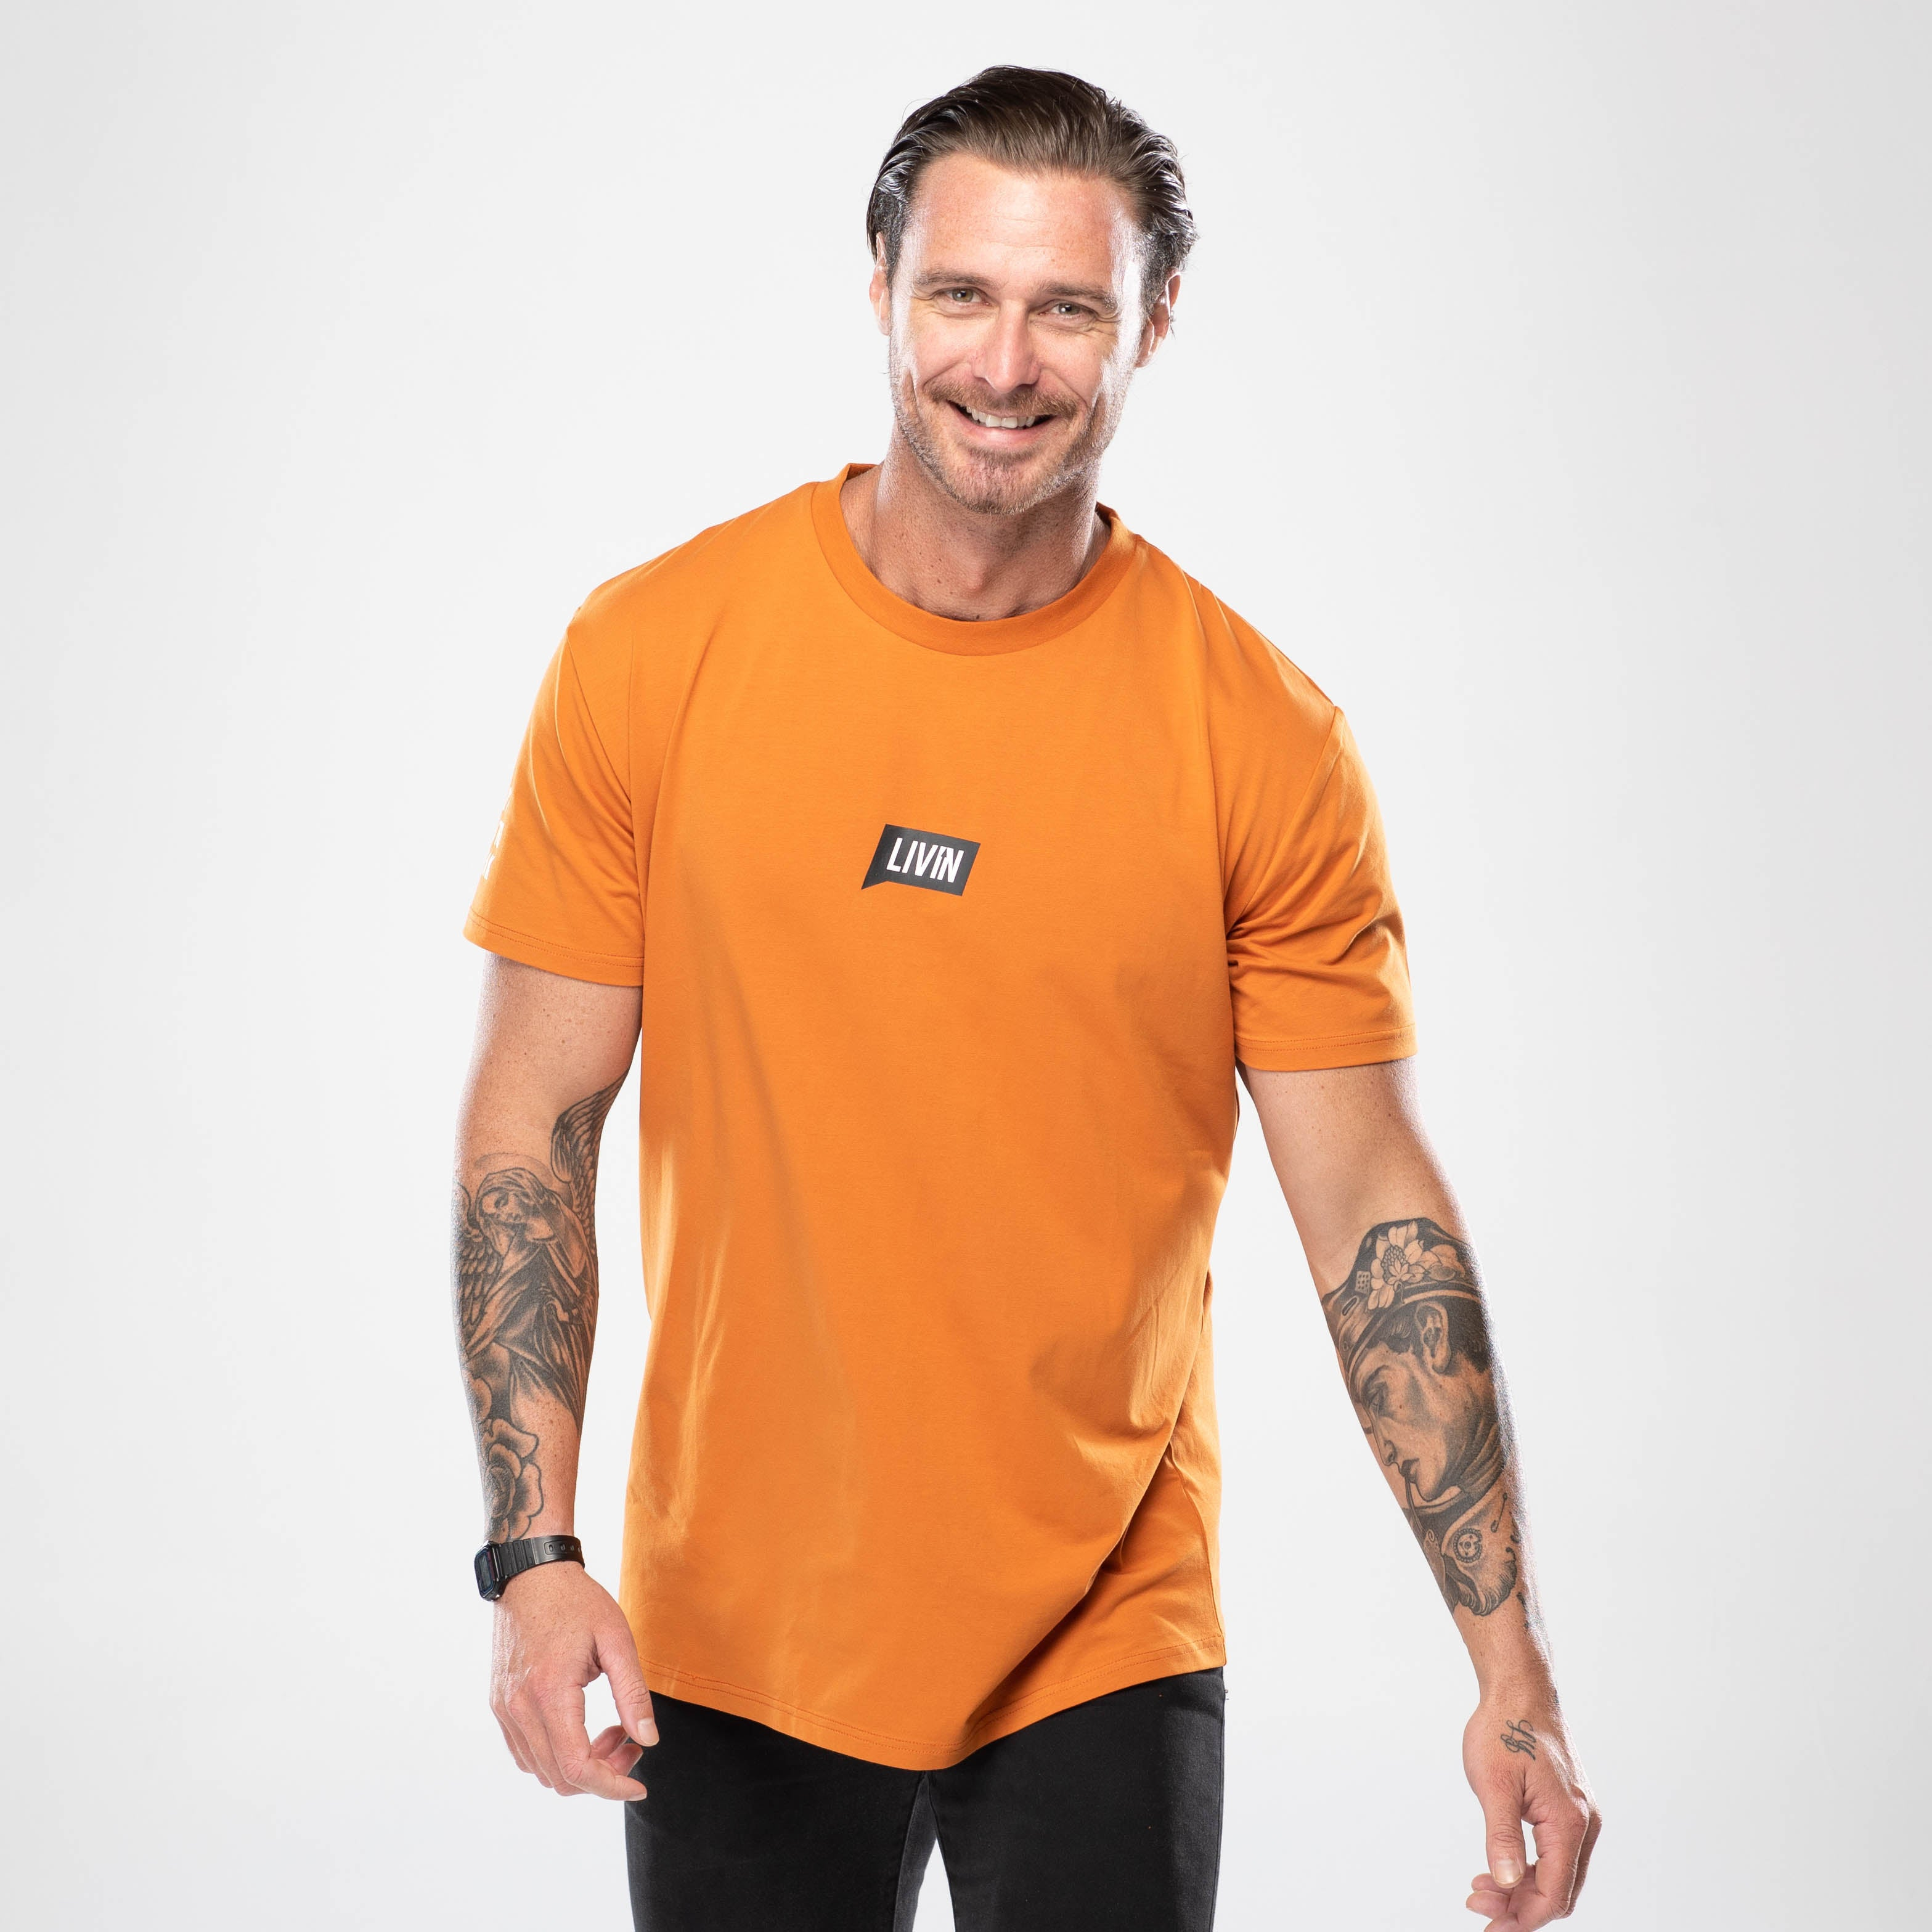 Signature Tee Burnt Orange by LIVIN